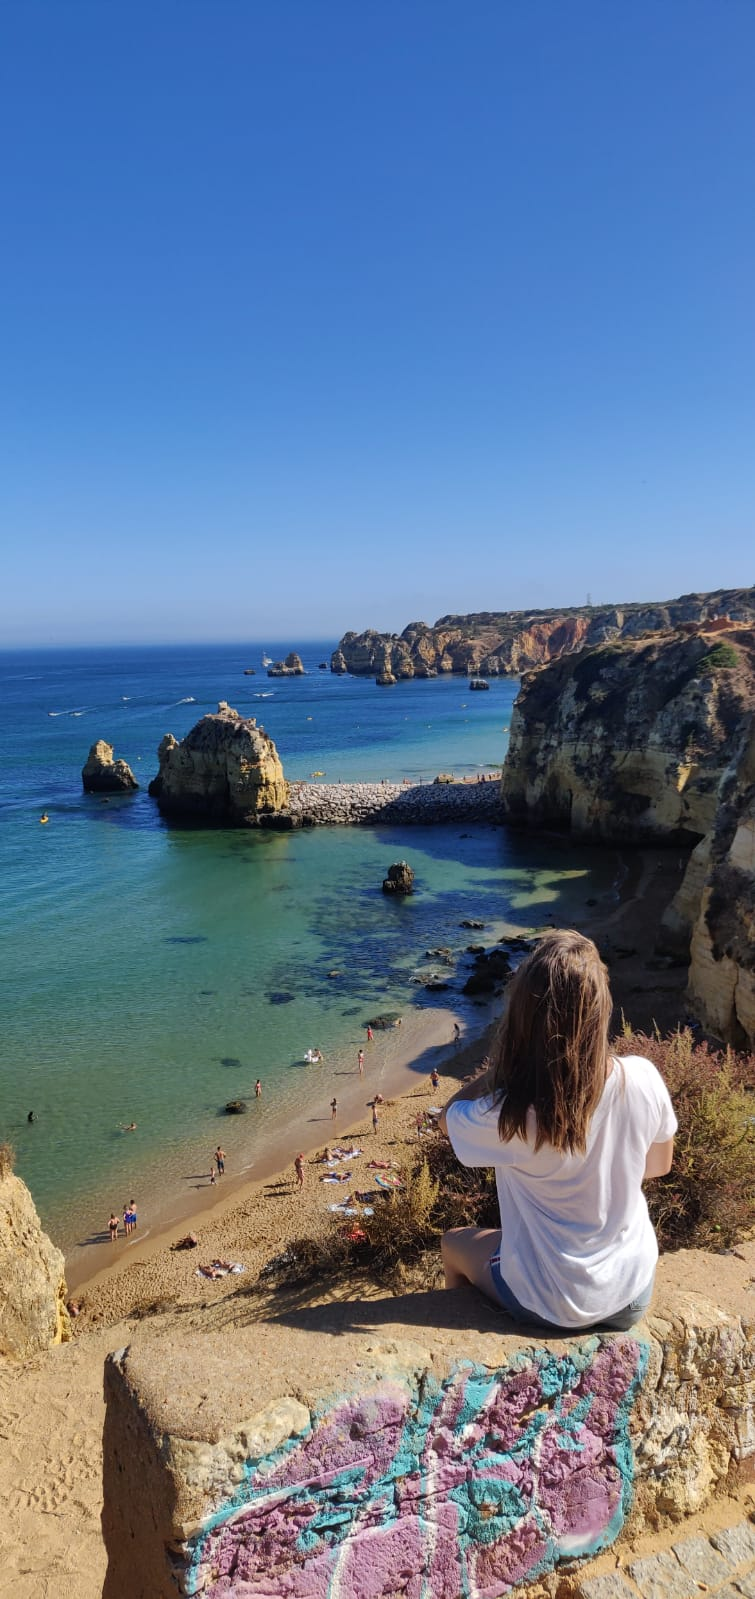 Traveling to Albufeira by train: the outward journey